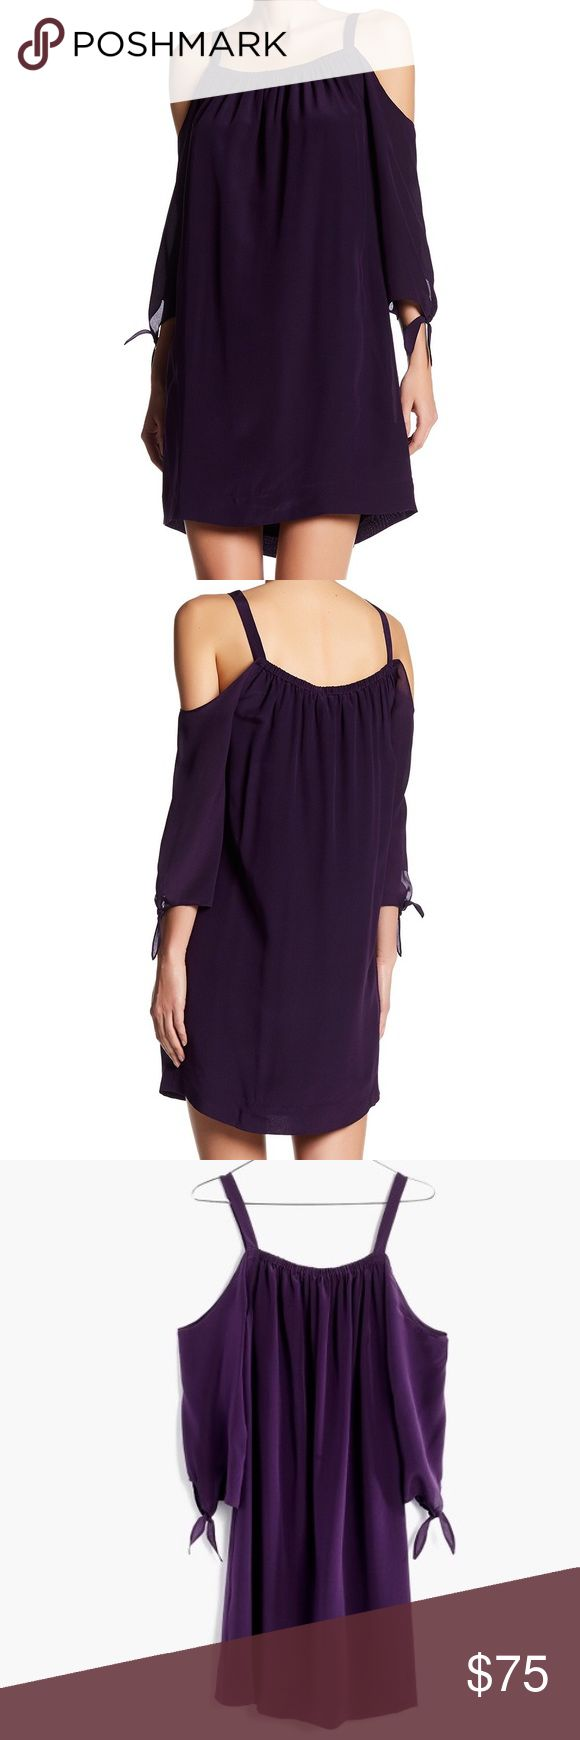 Madewell Silk Cold Shoulder Purple Dress Sz 8 Madewell Silk Cold Shoulder Dress. Size 8. Dark Purple. 3/4 Sleeves with adjustable ties cuffs. Adjustable straps. Elasticized scoop neckline. Fully lined. Shell - 100% Silk / Lining - 100% Polyester. Madewell Dresses